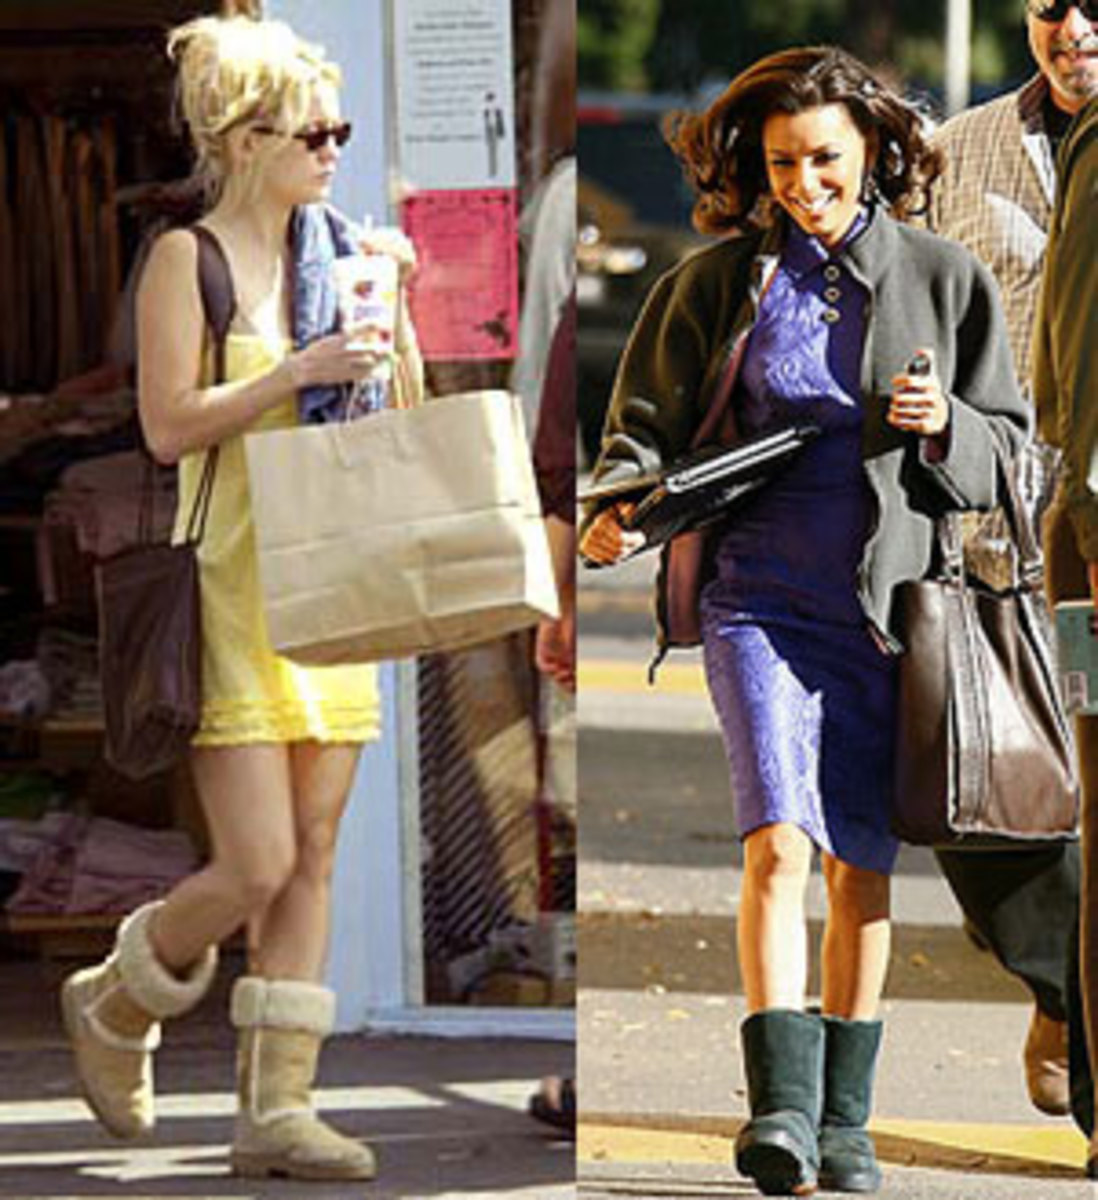 Kate Hudson sporting tan Ugg boots and Eva Longoria in black Ugg boots in split photo